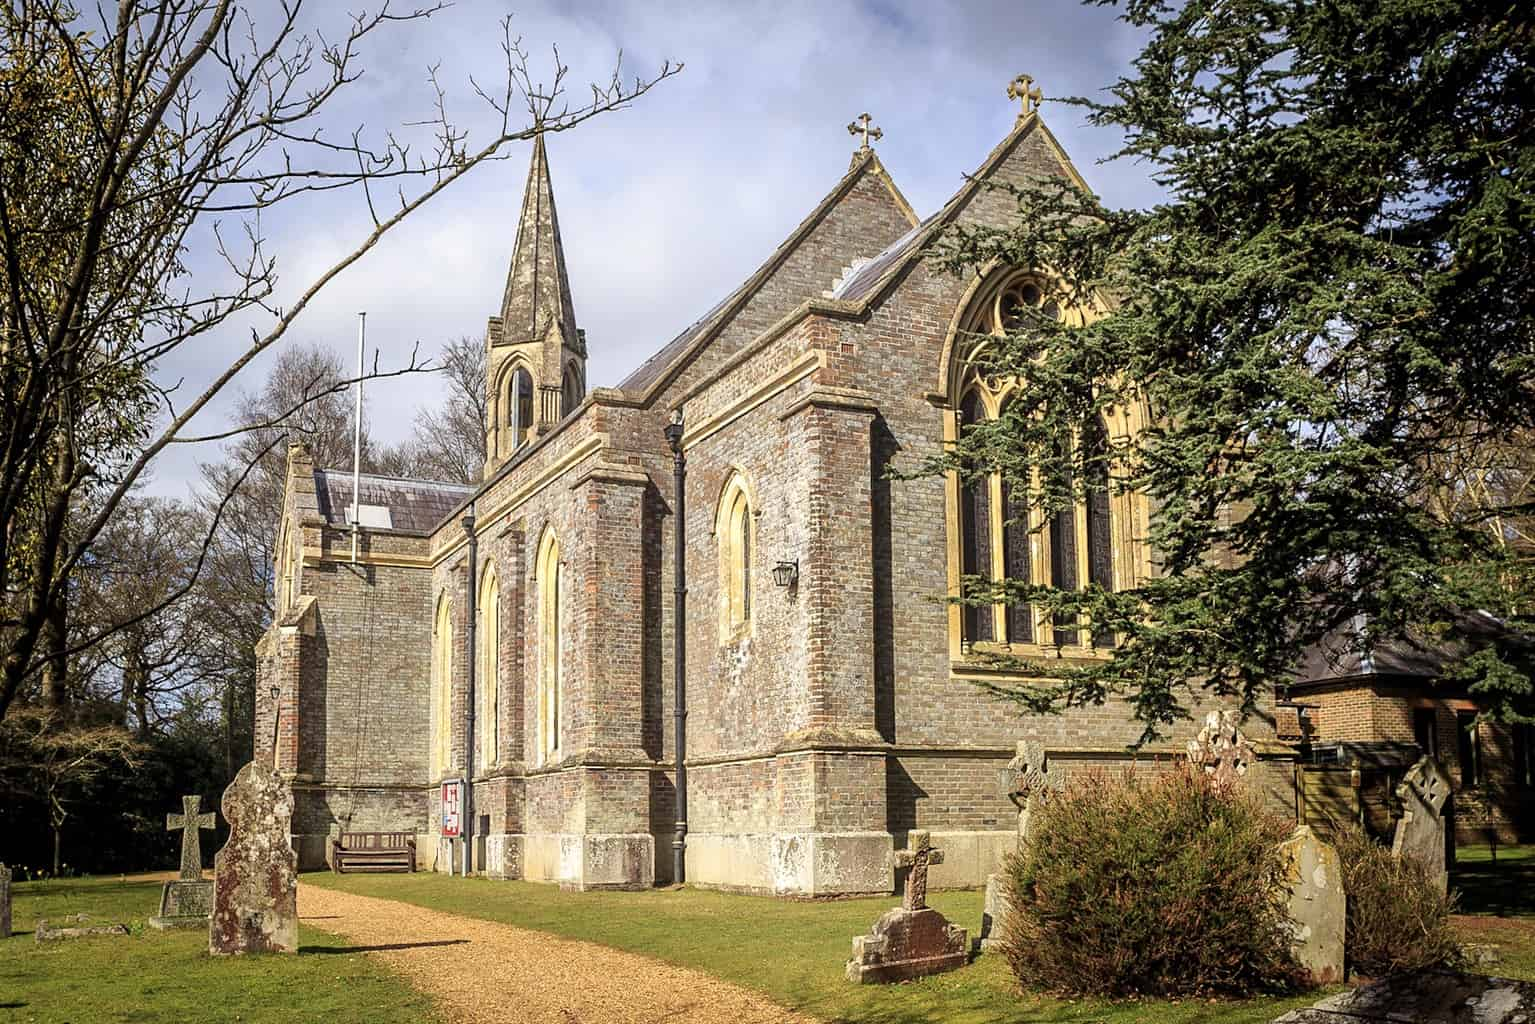 Architectural photography in Hampshire by Rick McEvoy